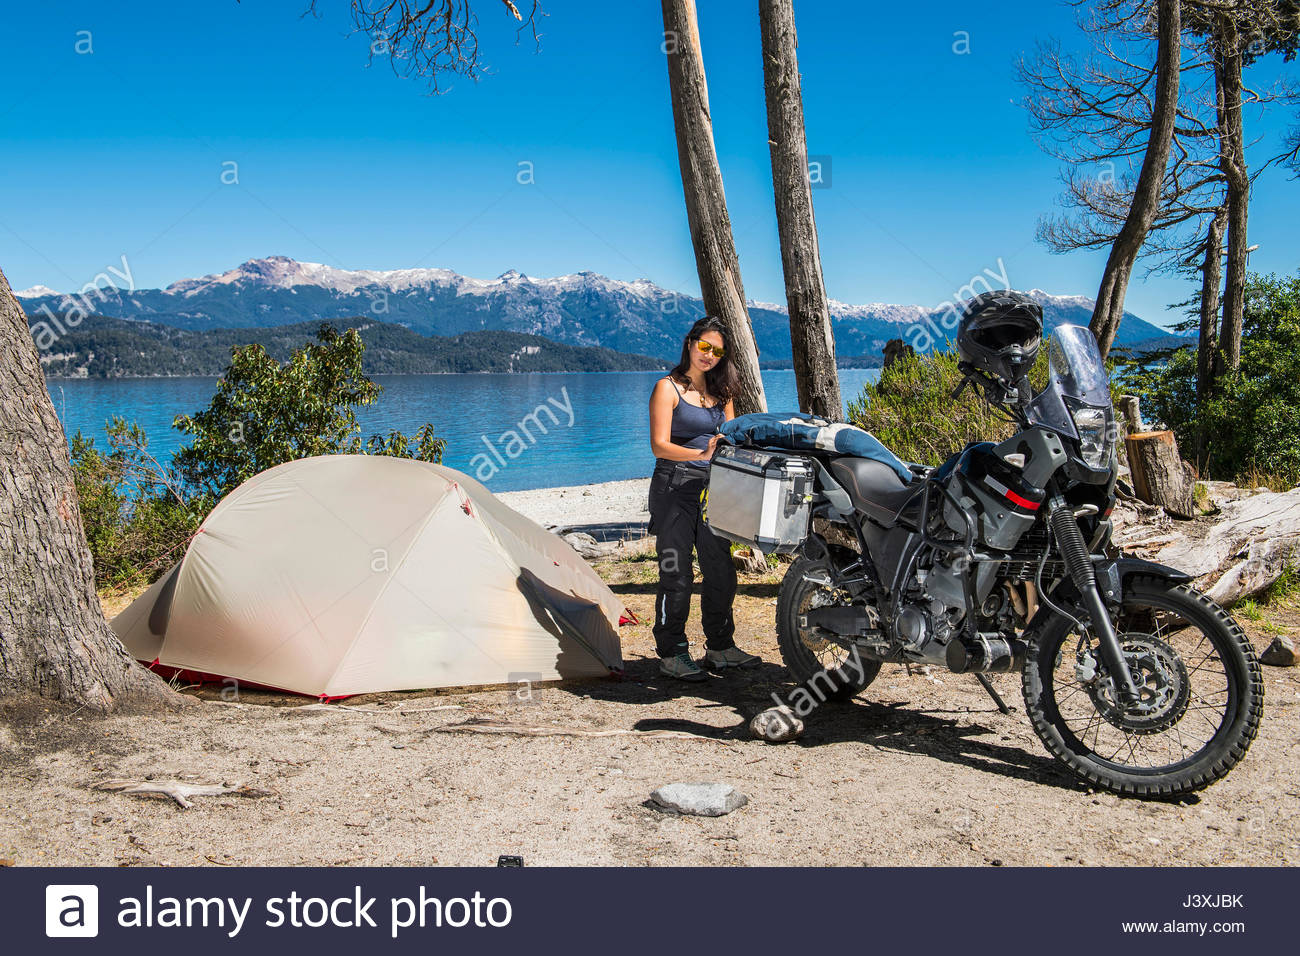 Woman packing touring motorbike at campsite, Nahuel Huapi Lake in Patagonia - Stock Image